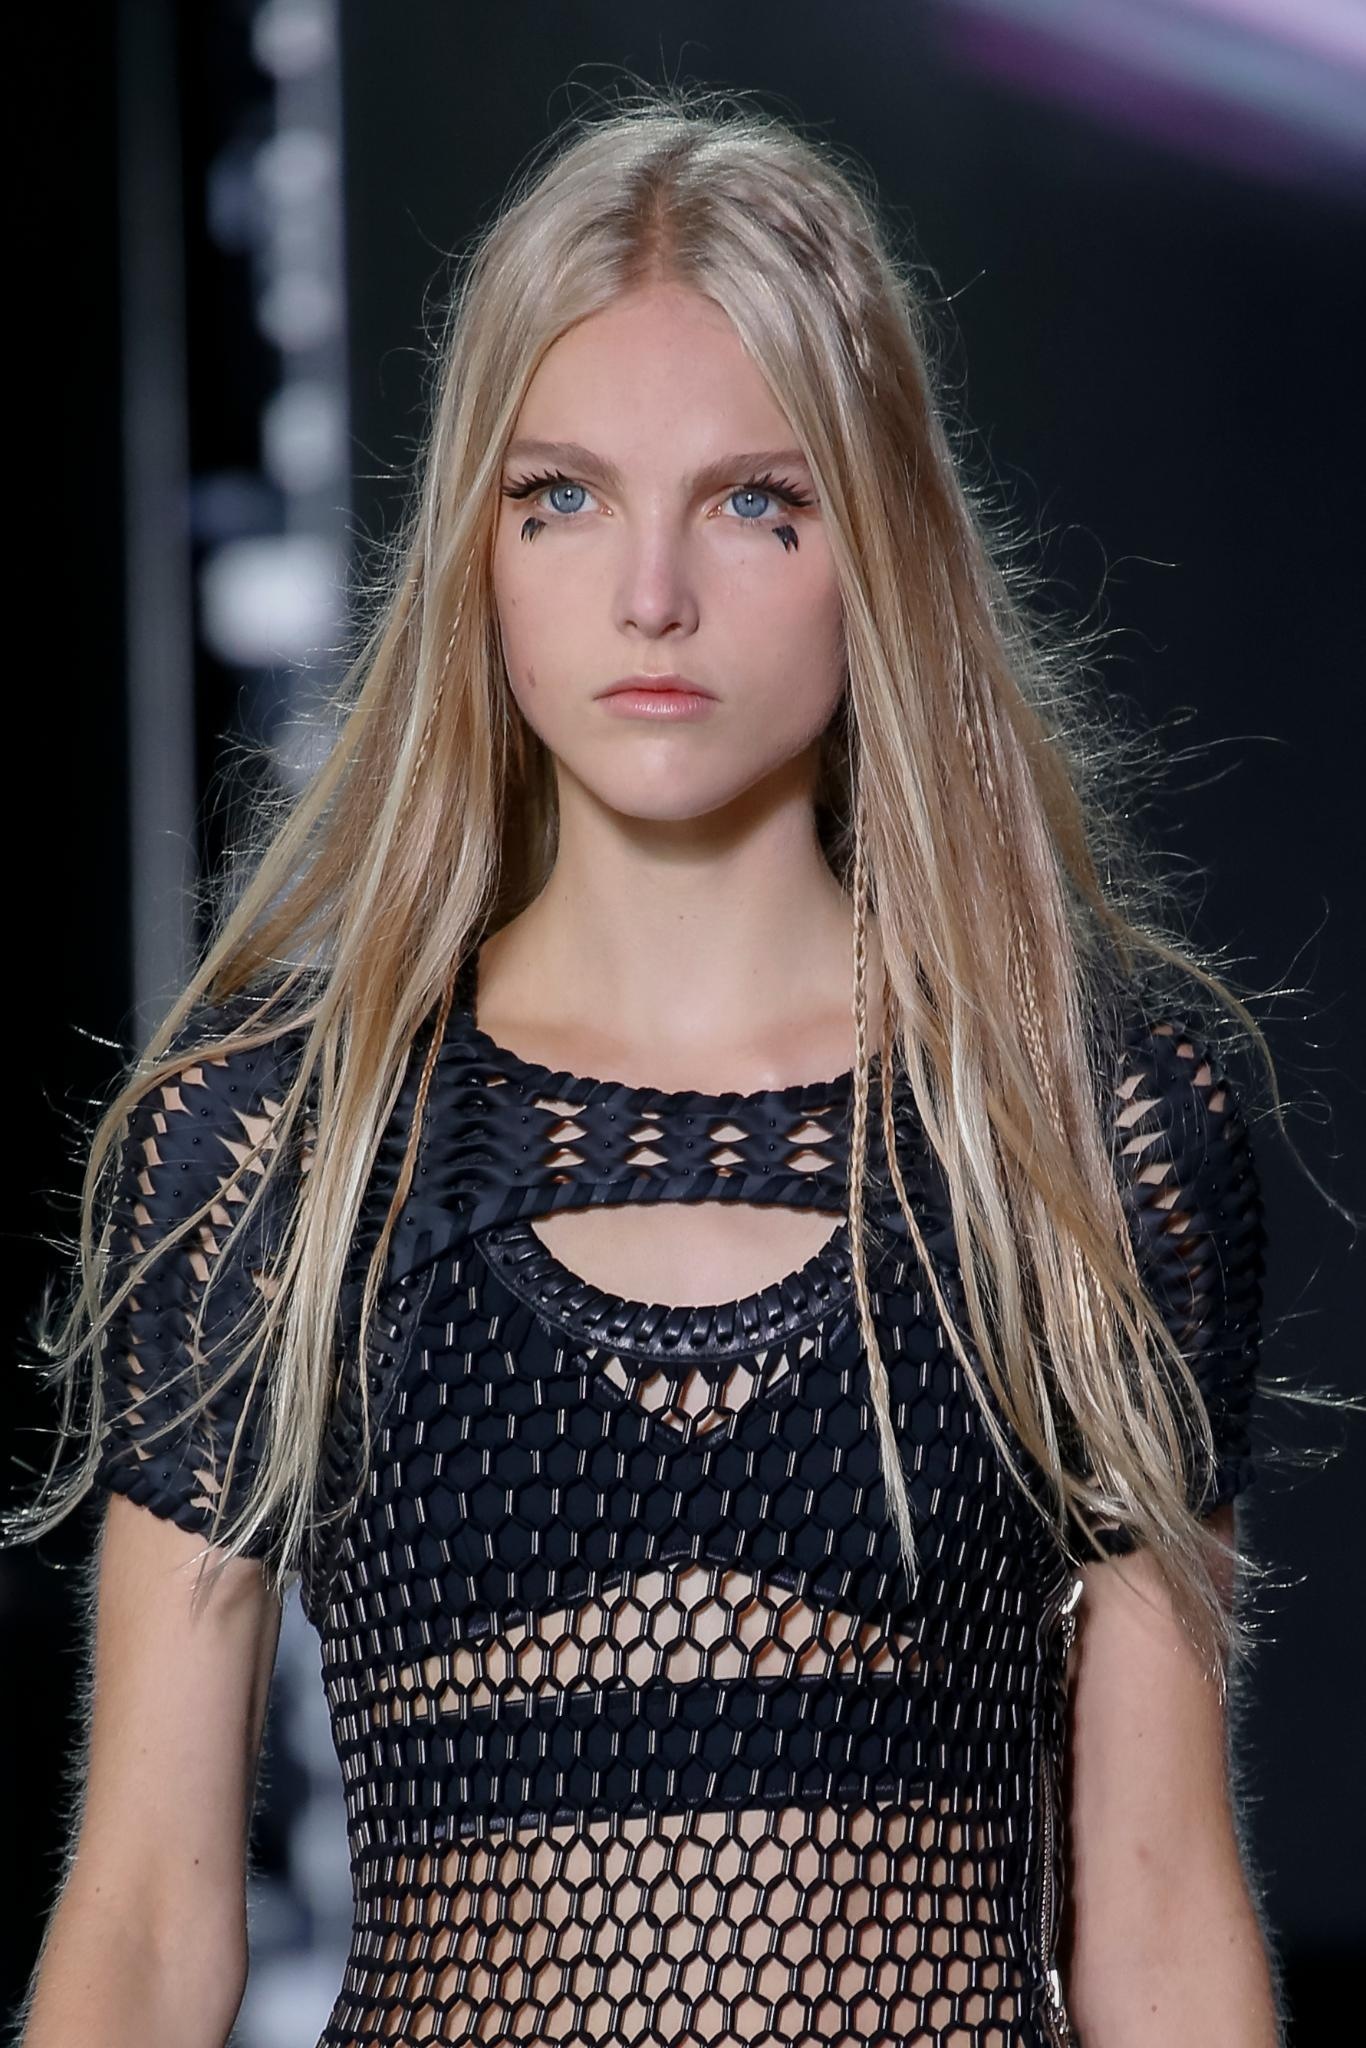 Vintage hairstyles: Blonde runway model with long straight hair with '70s style hidden braids and natural texture